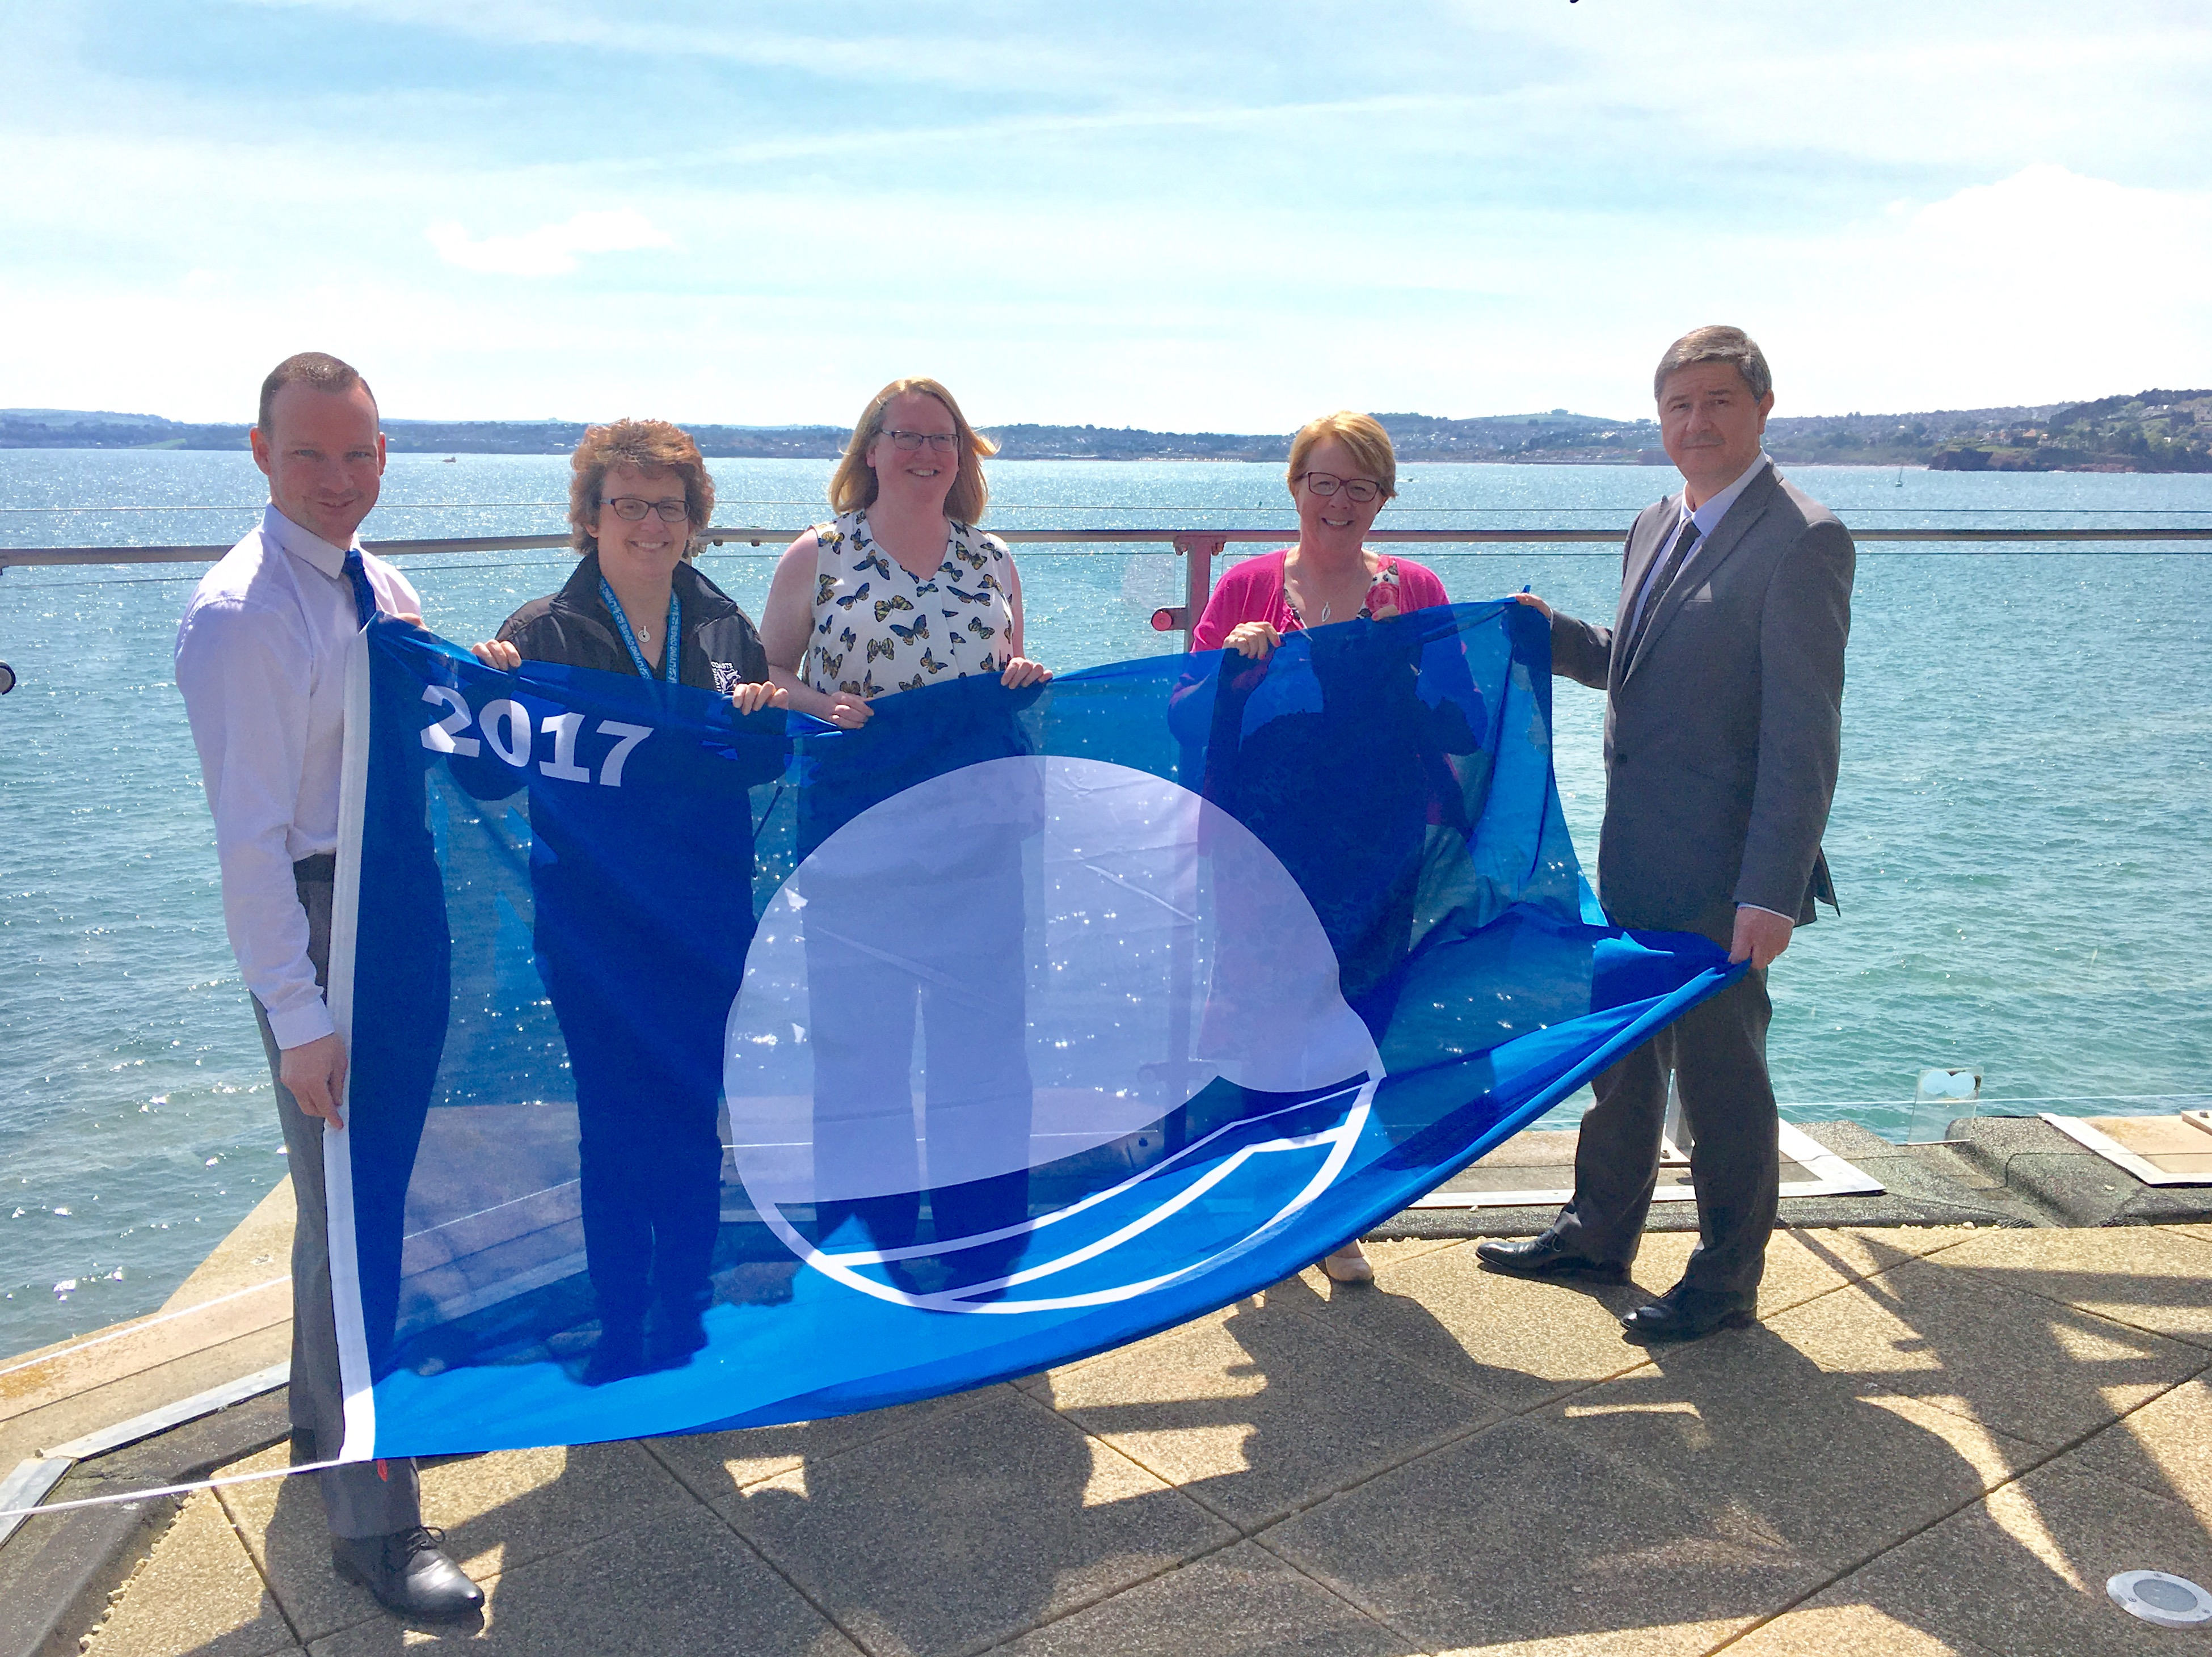 Left to right: Simon Wallace, Operations Manager for Beaches & Coastline, Torbay Council; Claire Rugg, Operations Manager, Living Coasts; Pippa Craddock, Director of Marketing & Development for Living Coasts; Kevin Mowat, Executive Head of Business Services, Torbay Council